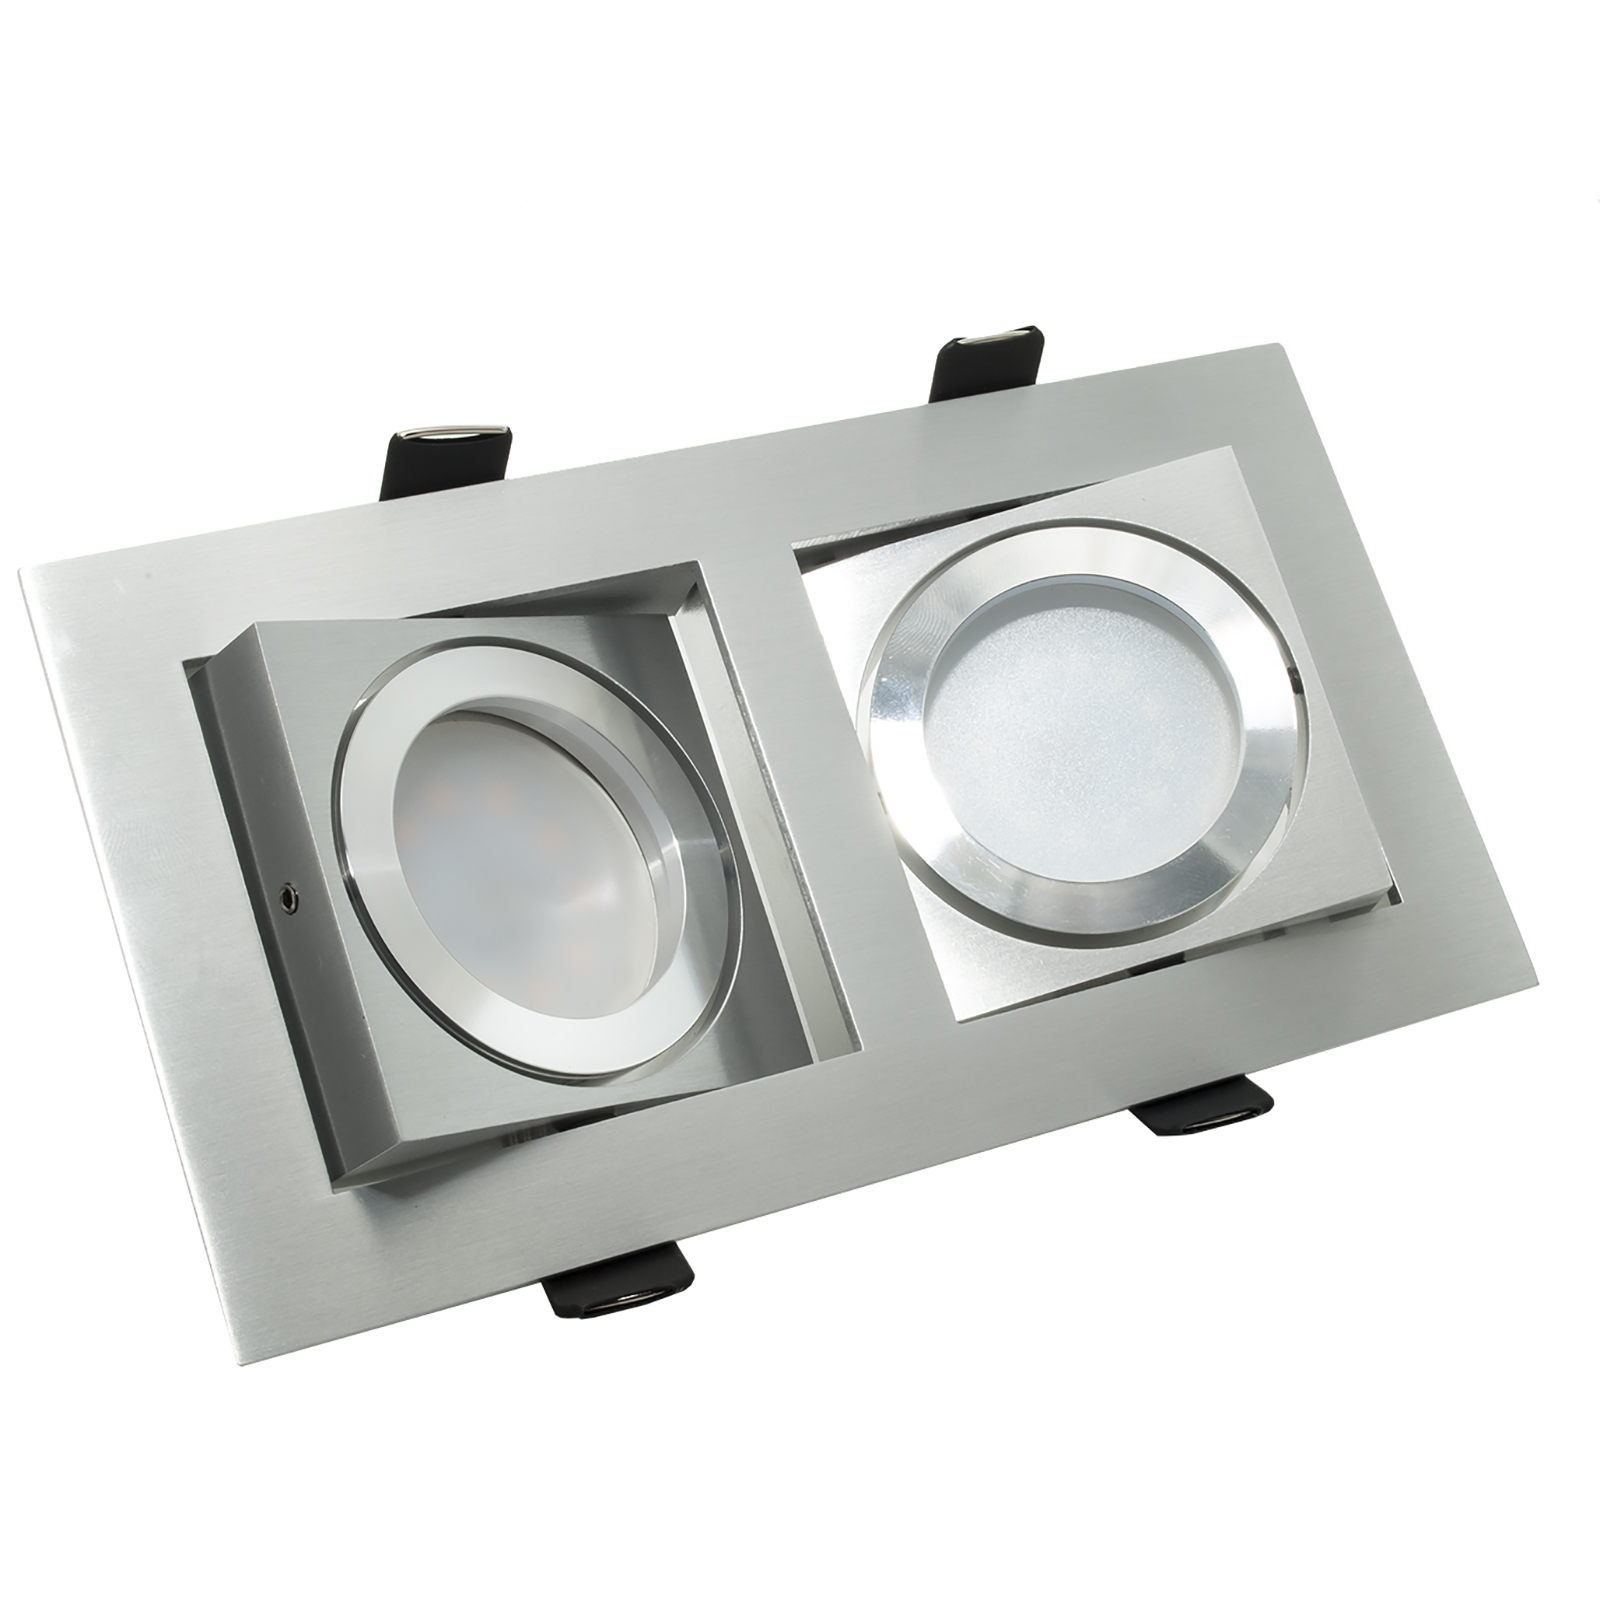 Spotlight rectangular LED-16W dual-lamp, recessed, diffused light 150 degree GU10